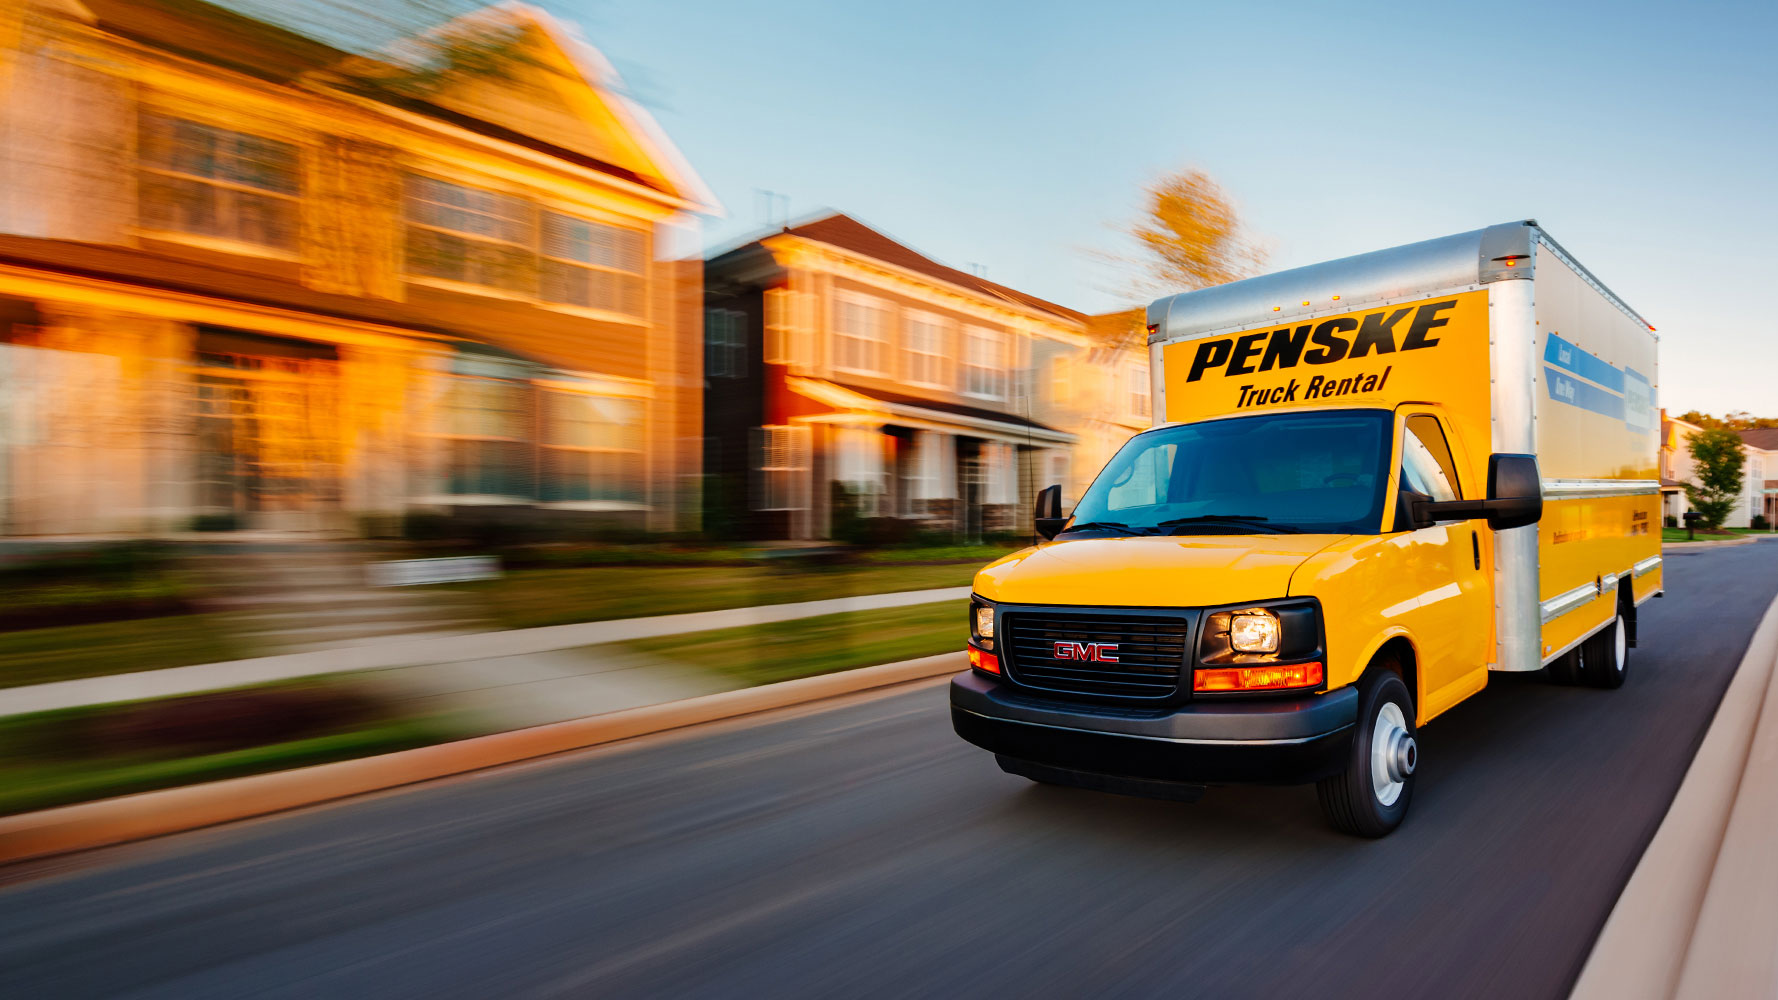 Penske Truck Rental - Closed